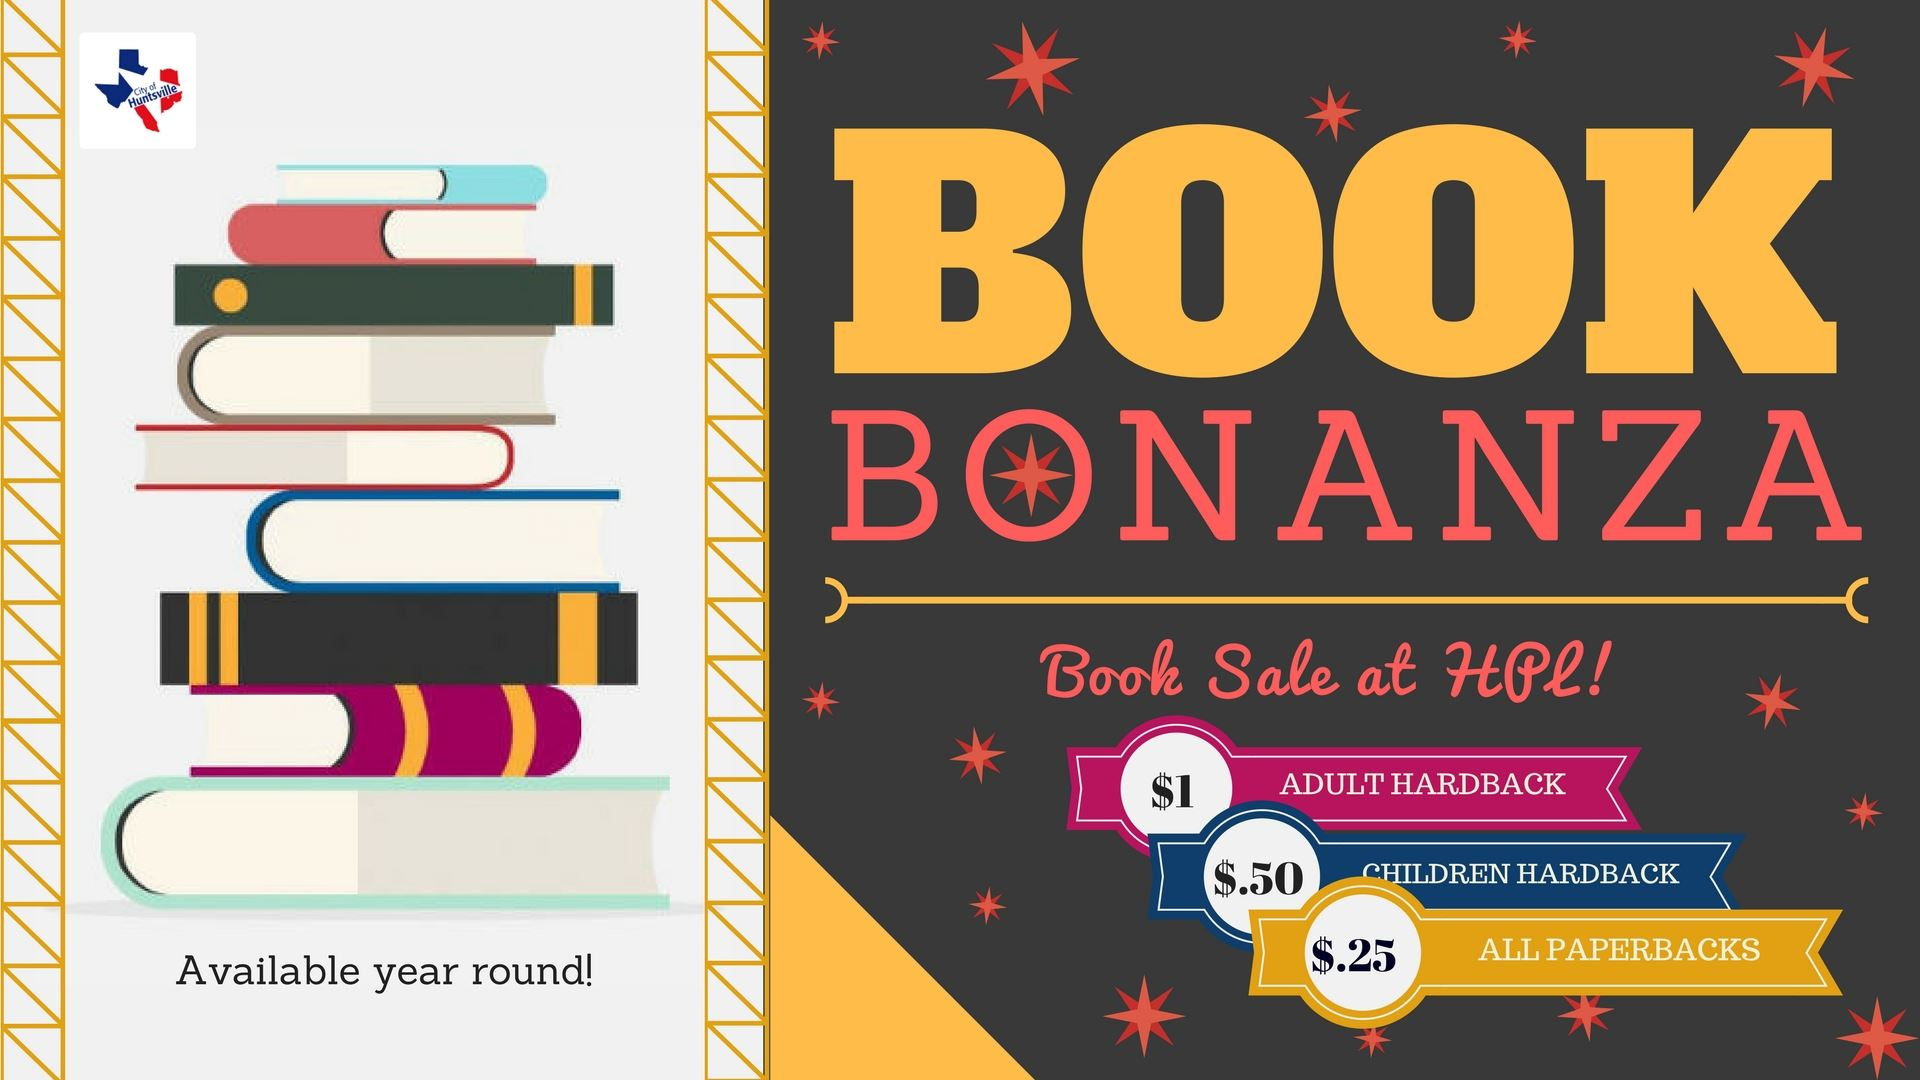 BOOK BONANZA - book sale